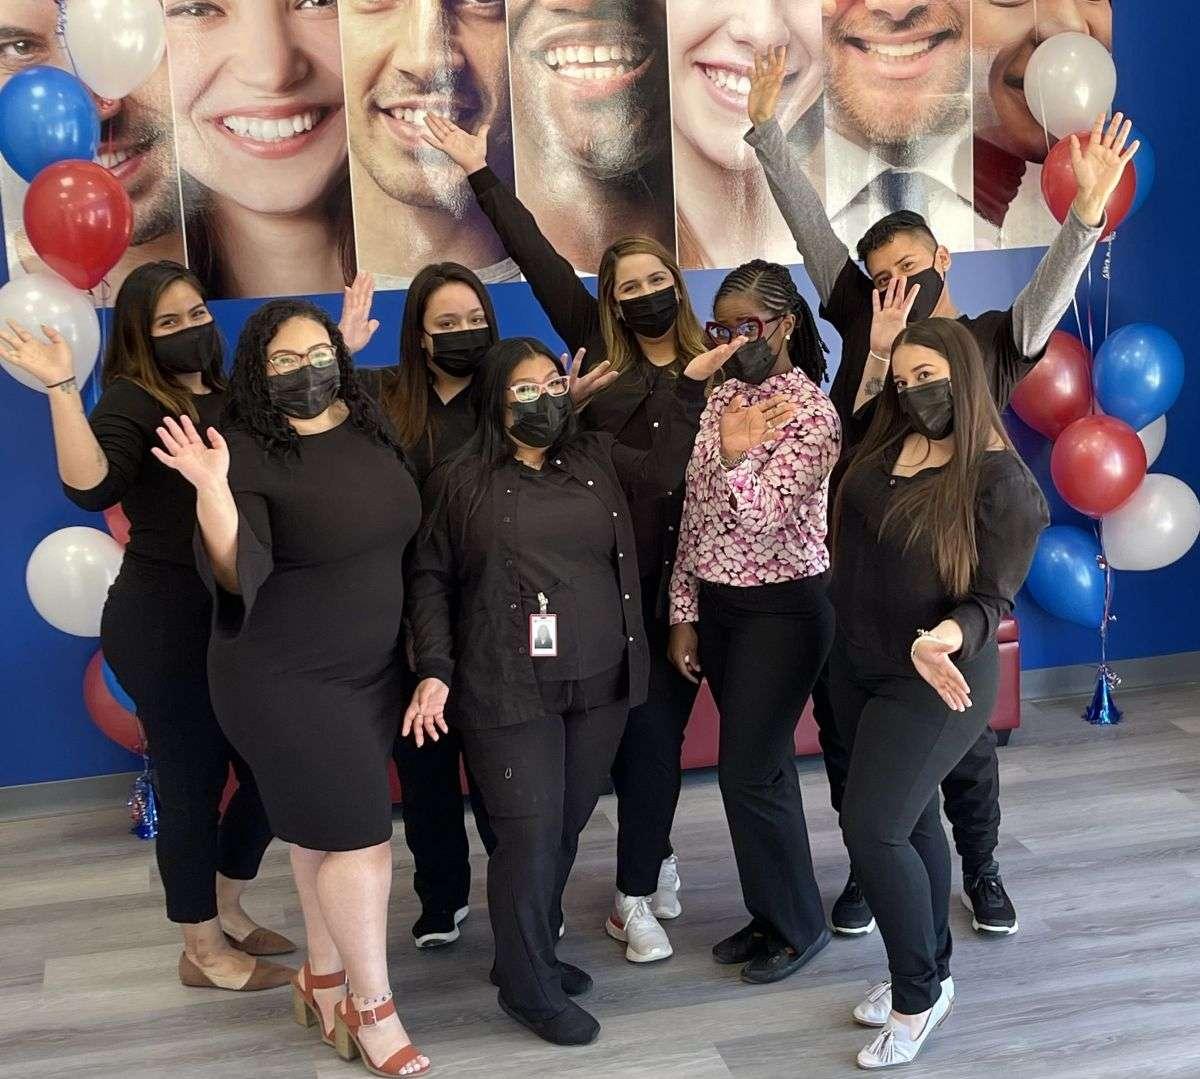 Orthodontic team opens new Diamond Braces office in Denville, NJ